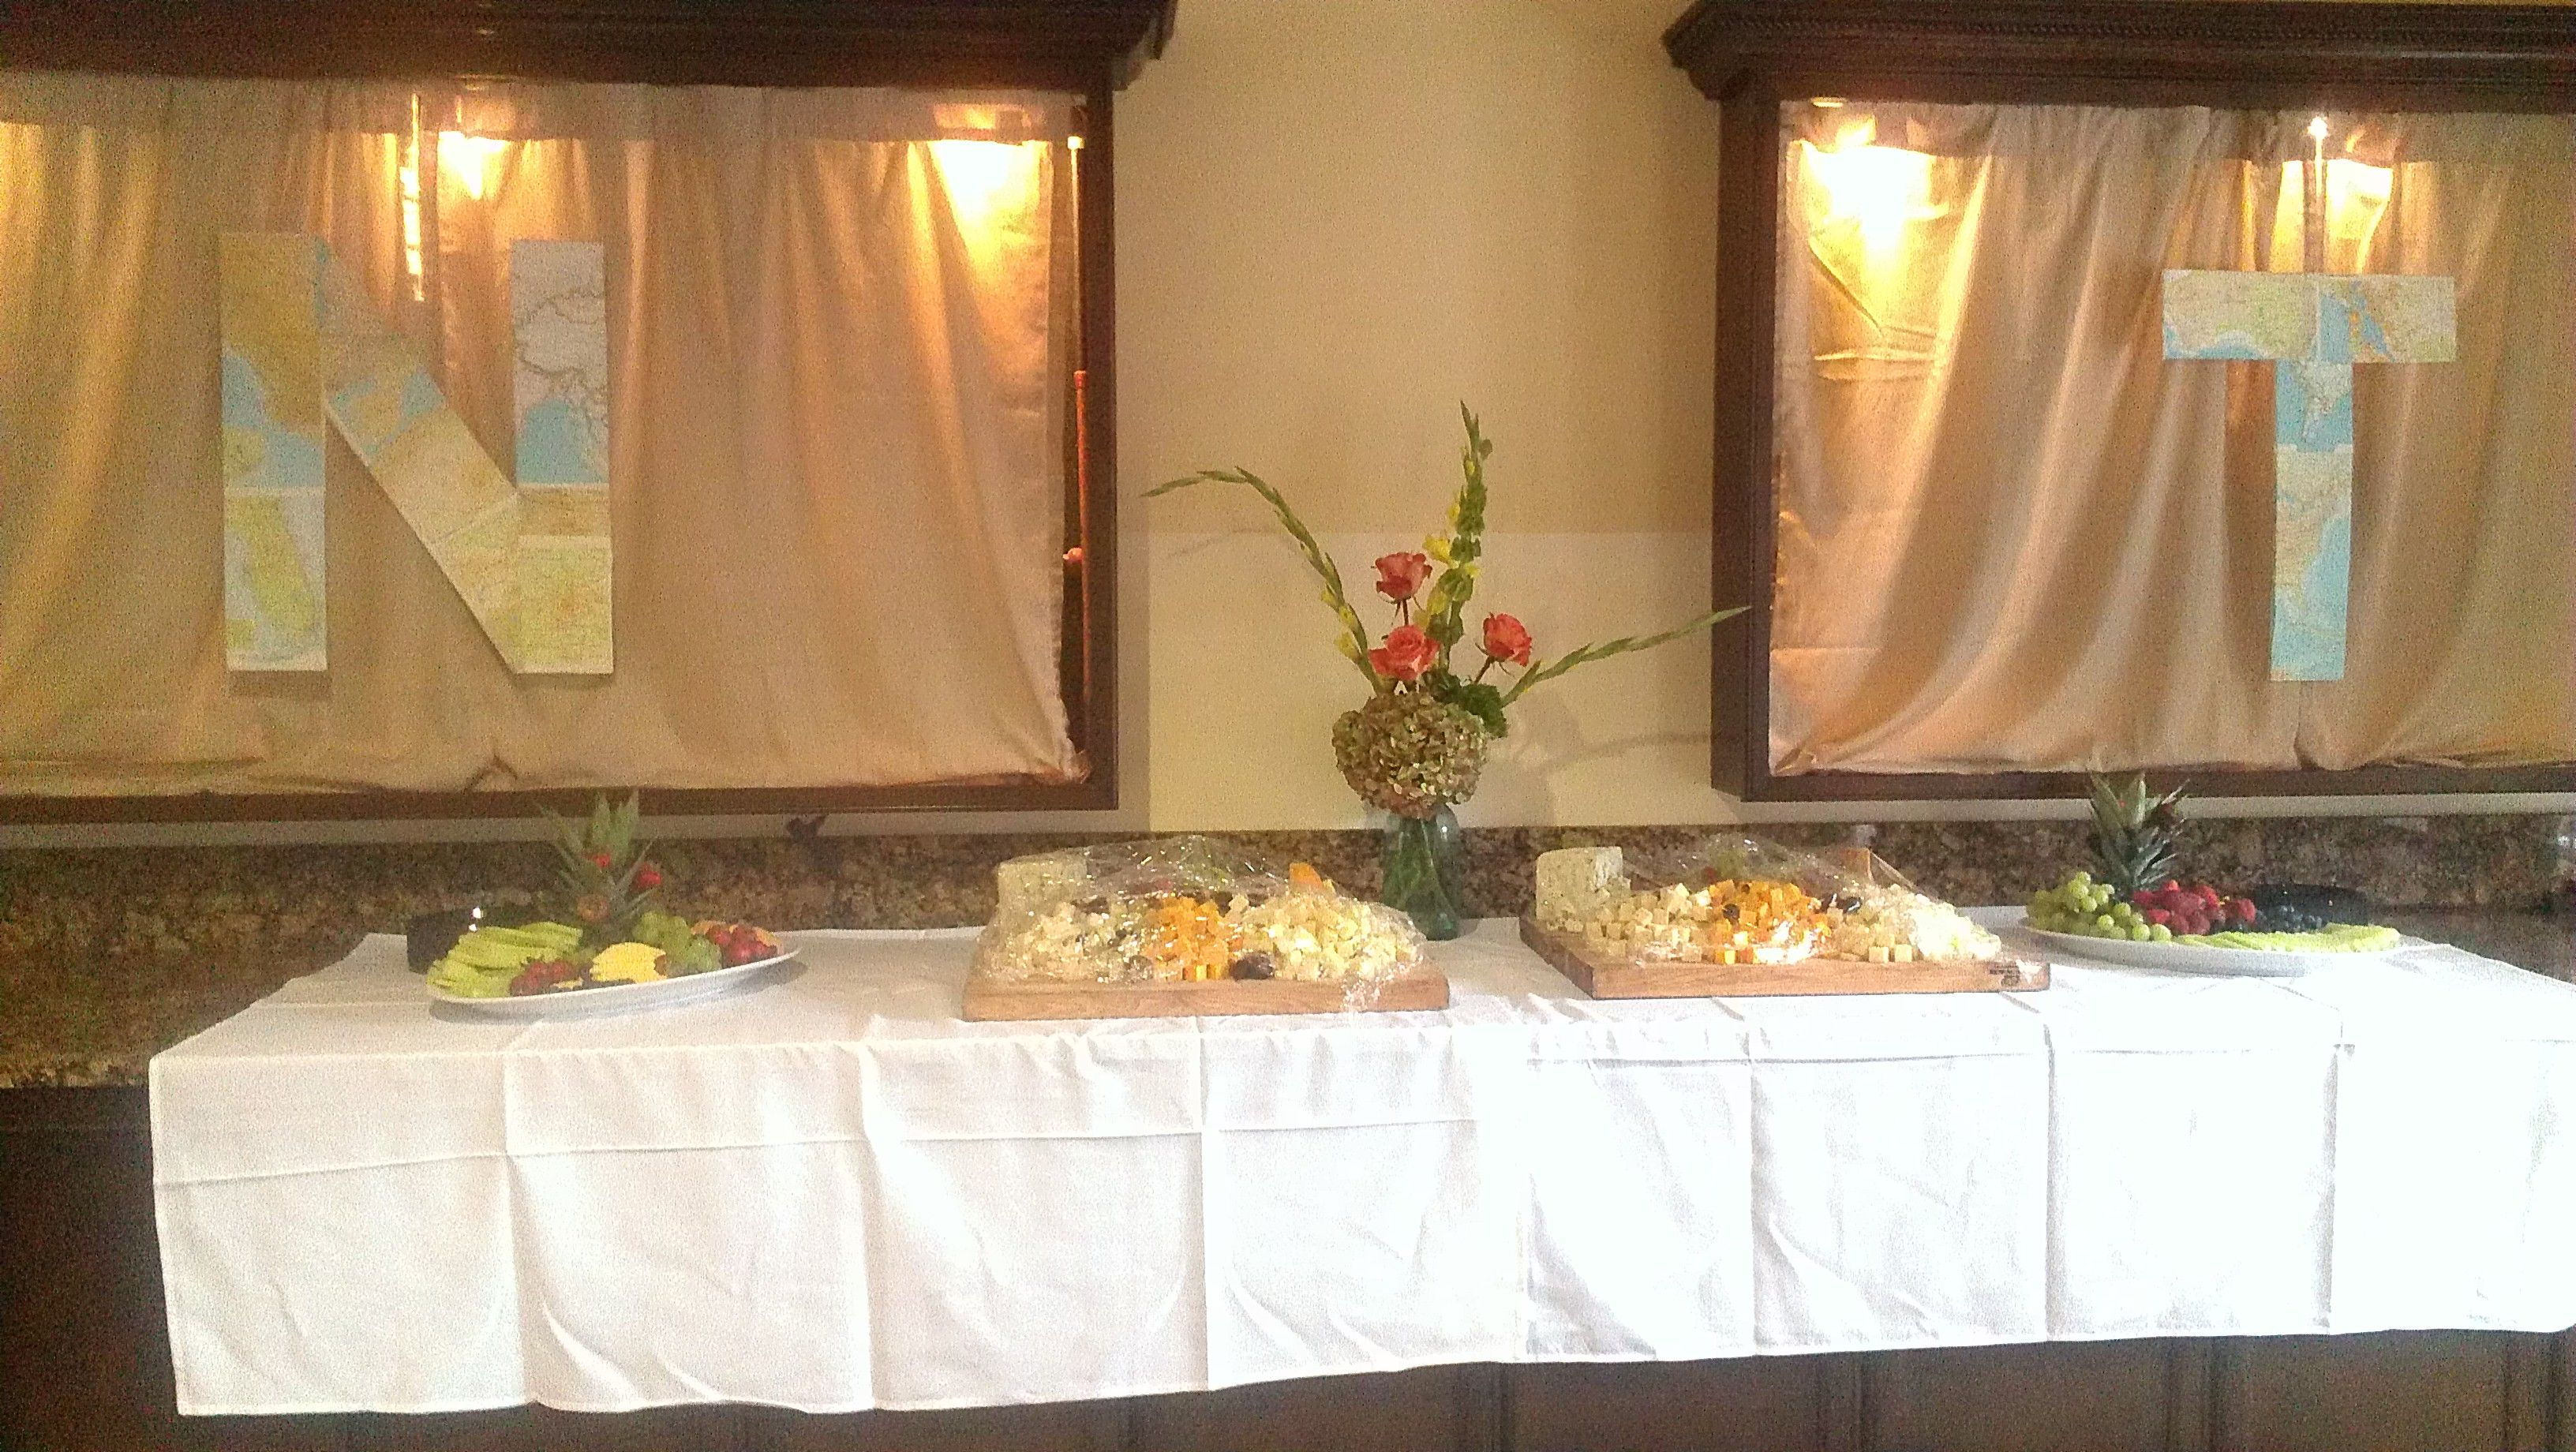 catering by Bliss Restaurant & Lounge for July Wedding Reception at The Inlet Sports Lodge, Murrells Inlet SC. map theme idea by East West Vintage Events in Asheville, NC.